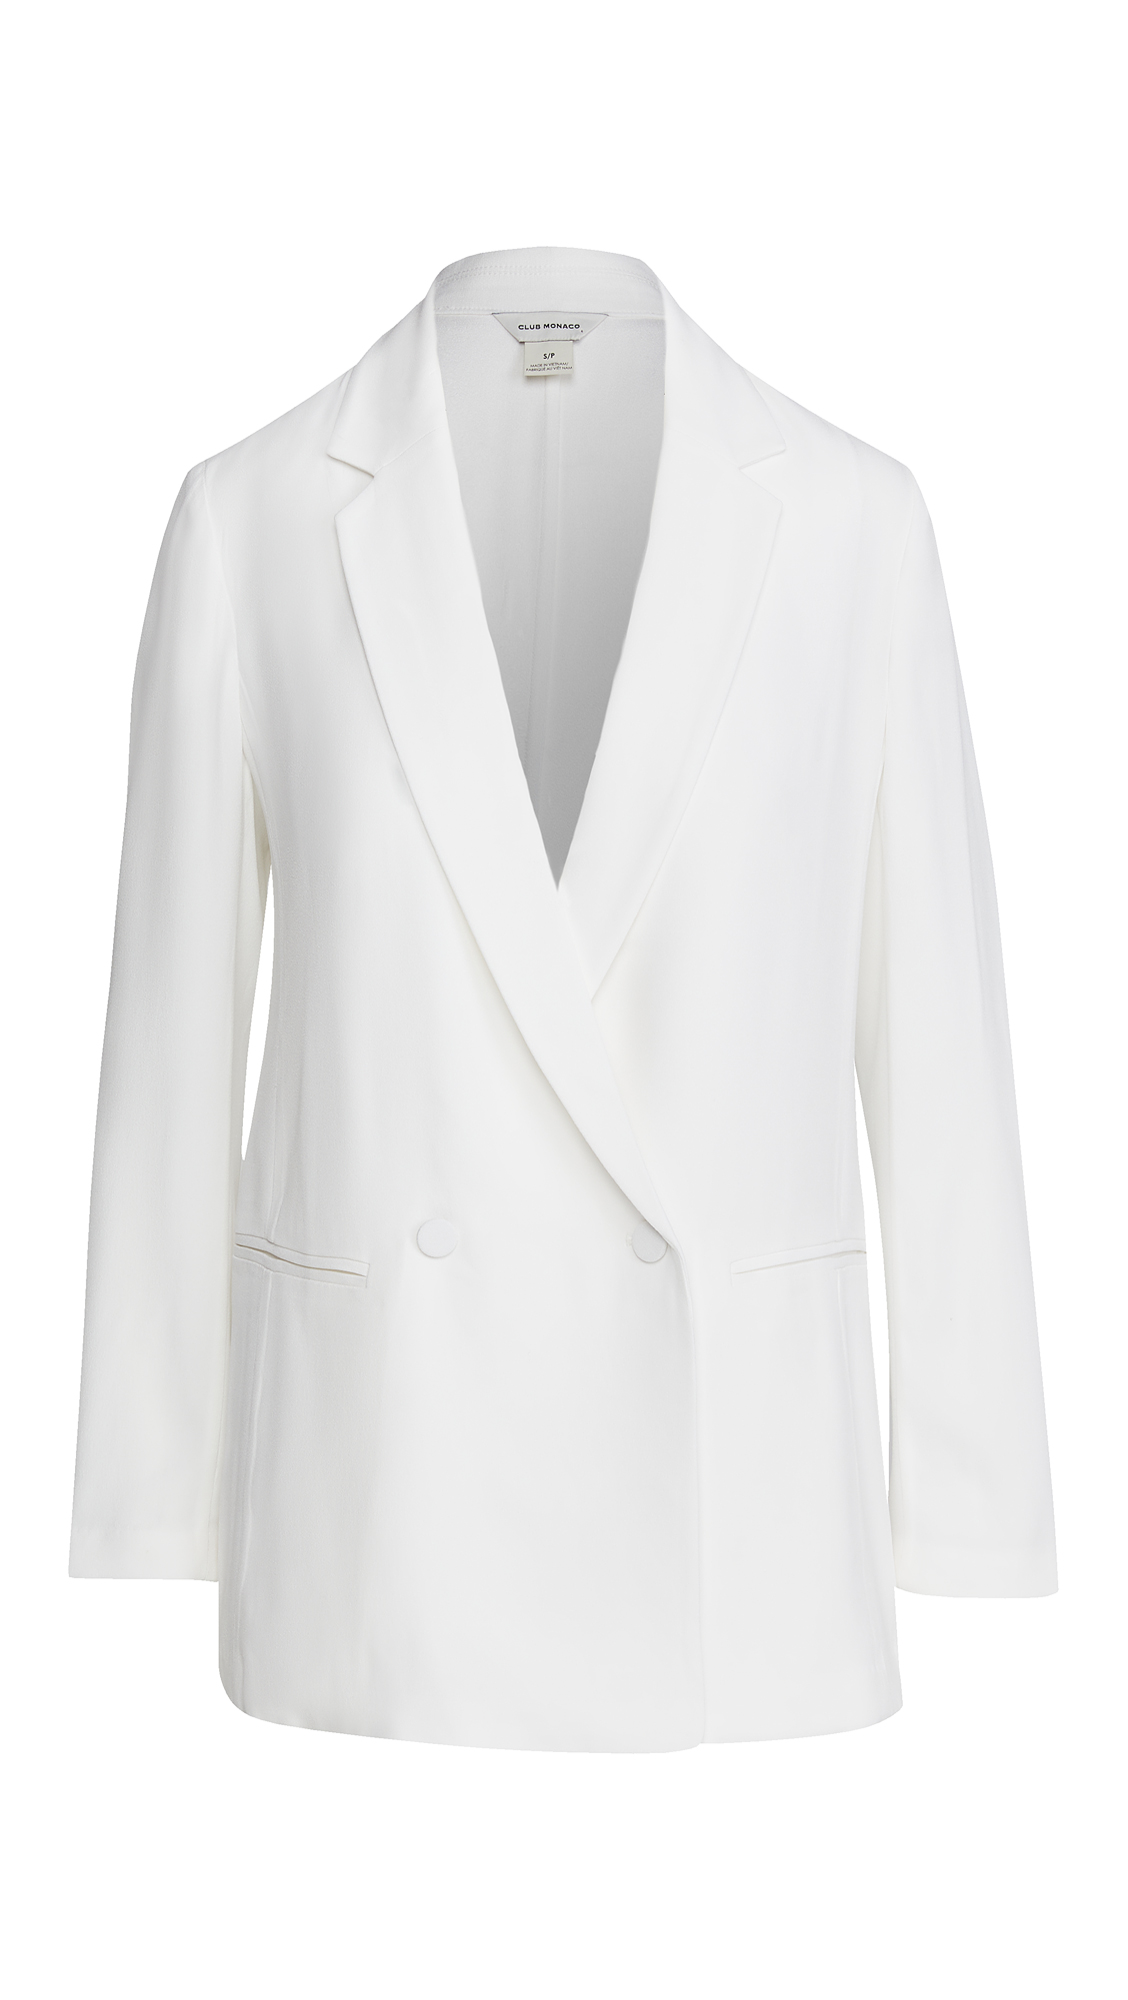 Club Monaco Deconstructed Blazer